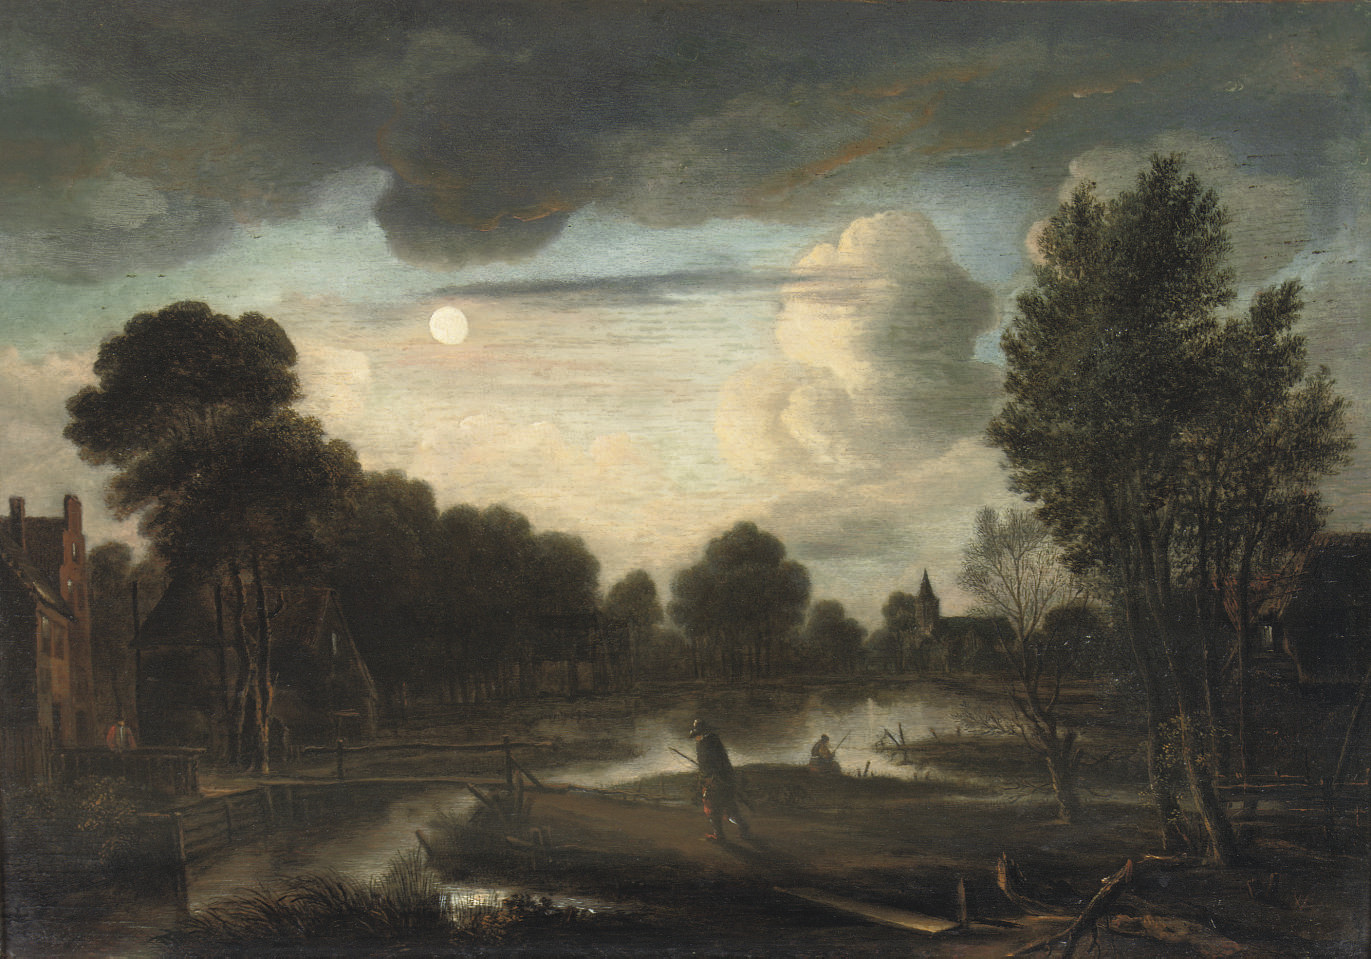 A moonlit river landscape with three figures near a bridge and a church in the distance